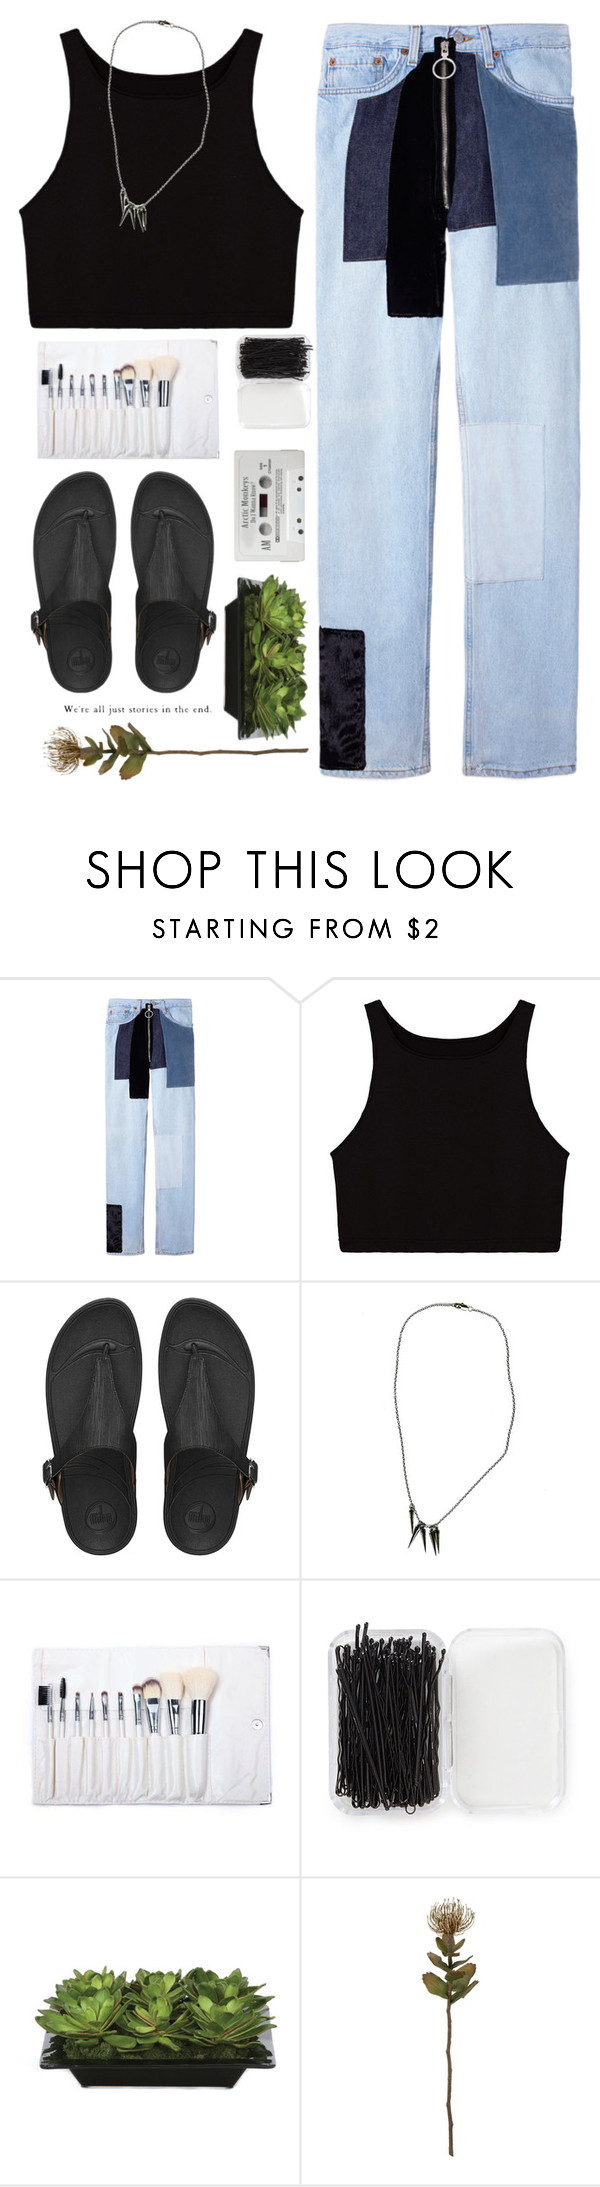 """""""*I'm not made out of steel*"""" by my-black-wings ❤ liked on Polyvore featuring FitFlop, Chris Habana, Forever 21, Lux-Art Silks and Crate and Barrel"""